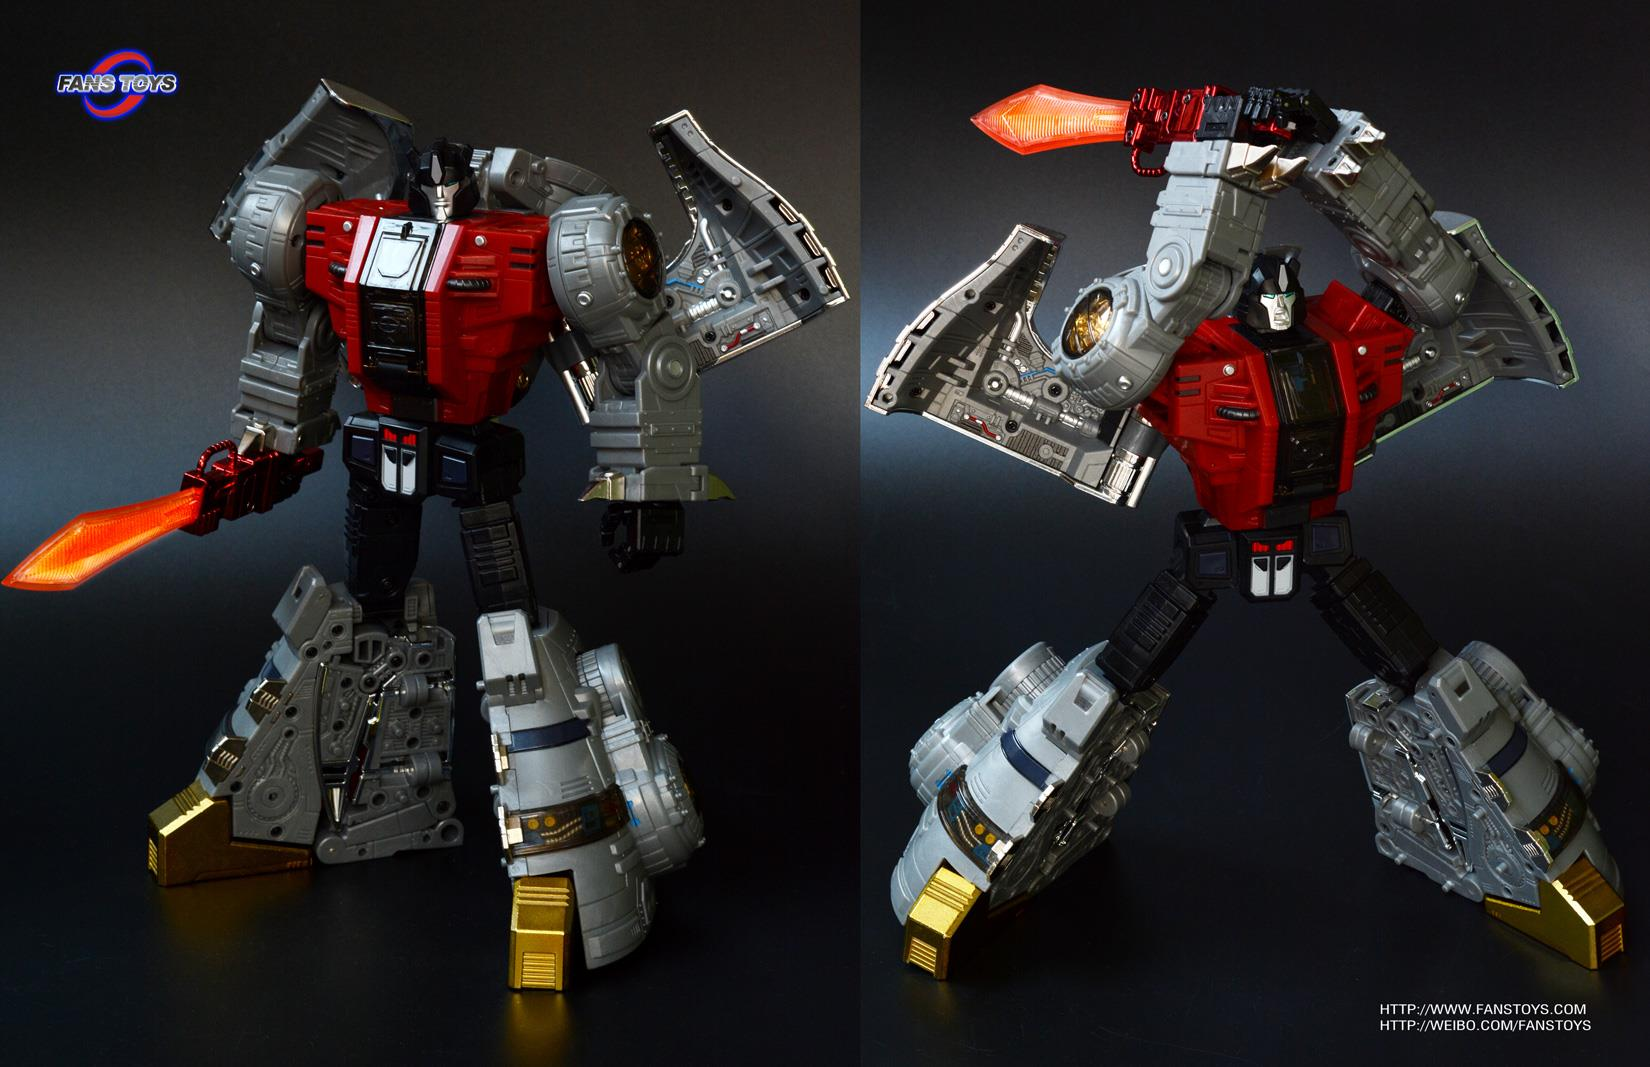 Fans Toys FT-07 Stomp Reissue